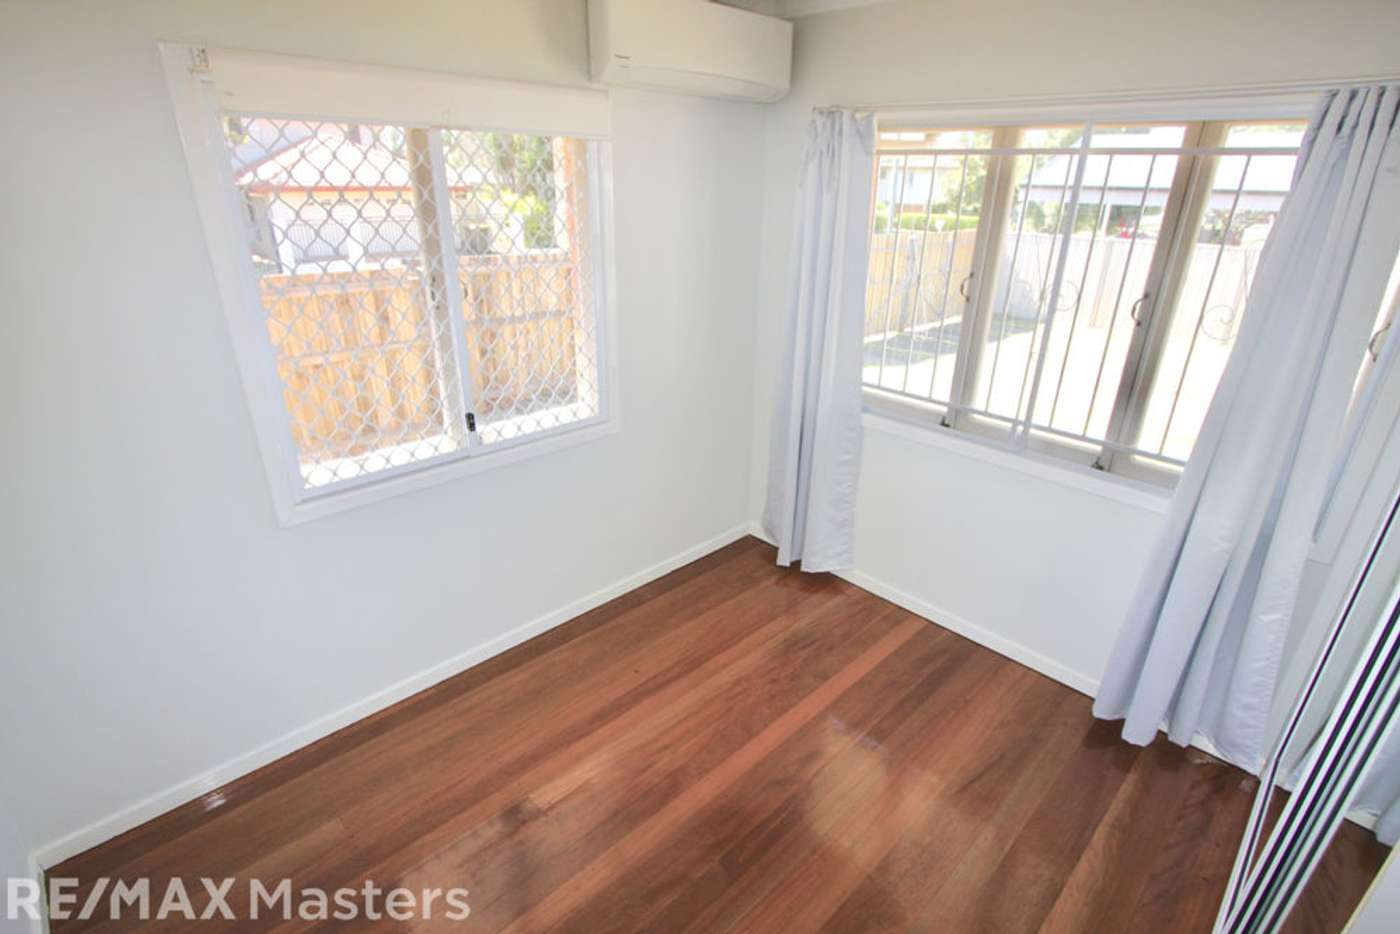 Sixth view of Homely house listing, 50 Trudgian Street, Sunnybank QLD 4109